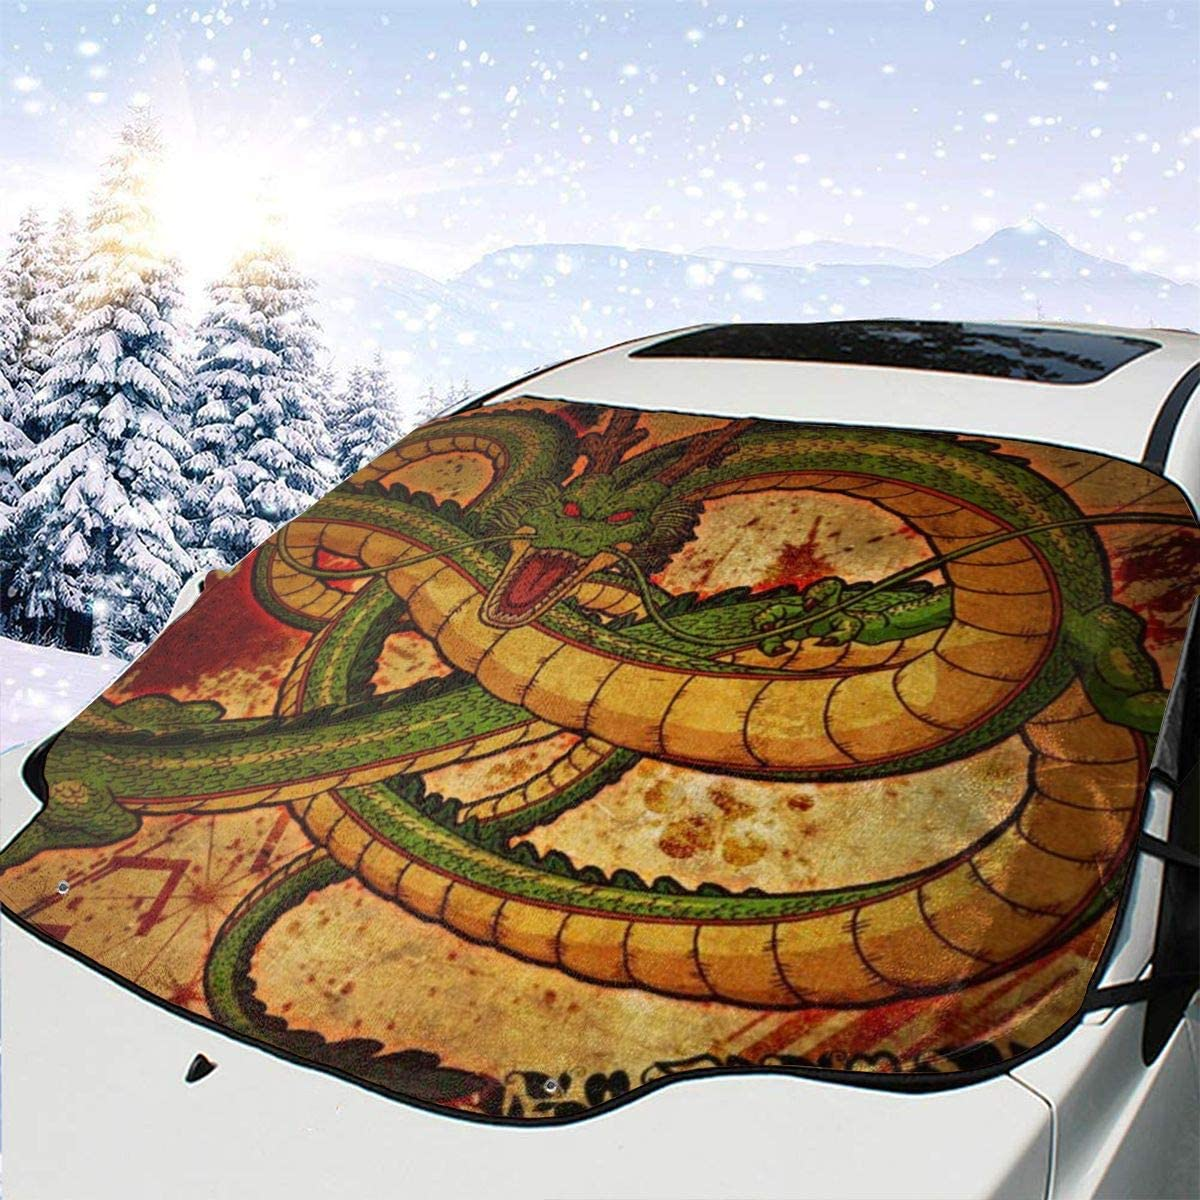 THONFIRE Car Front Window Windshields Ice Sunshade Chinese Dragon Cover Windproof Blocks Heat Keeps Your Vehicle Cool Visor Protector Automotive Summer Heatshield